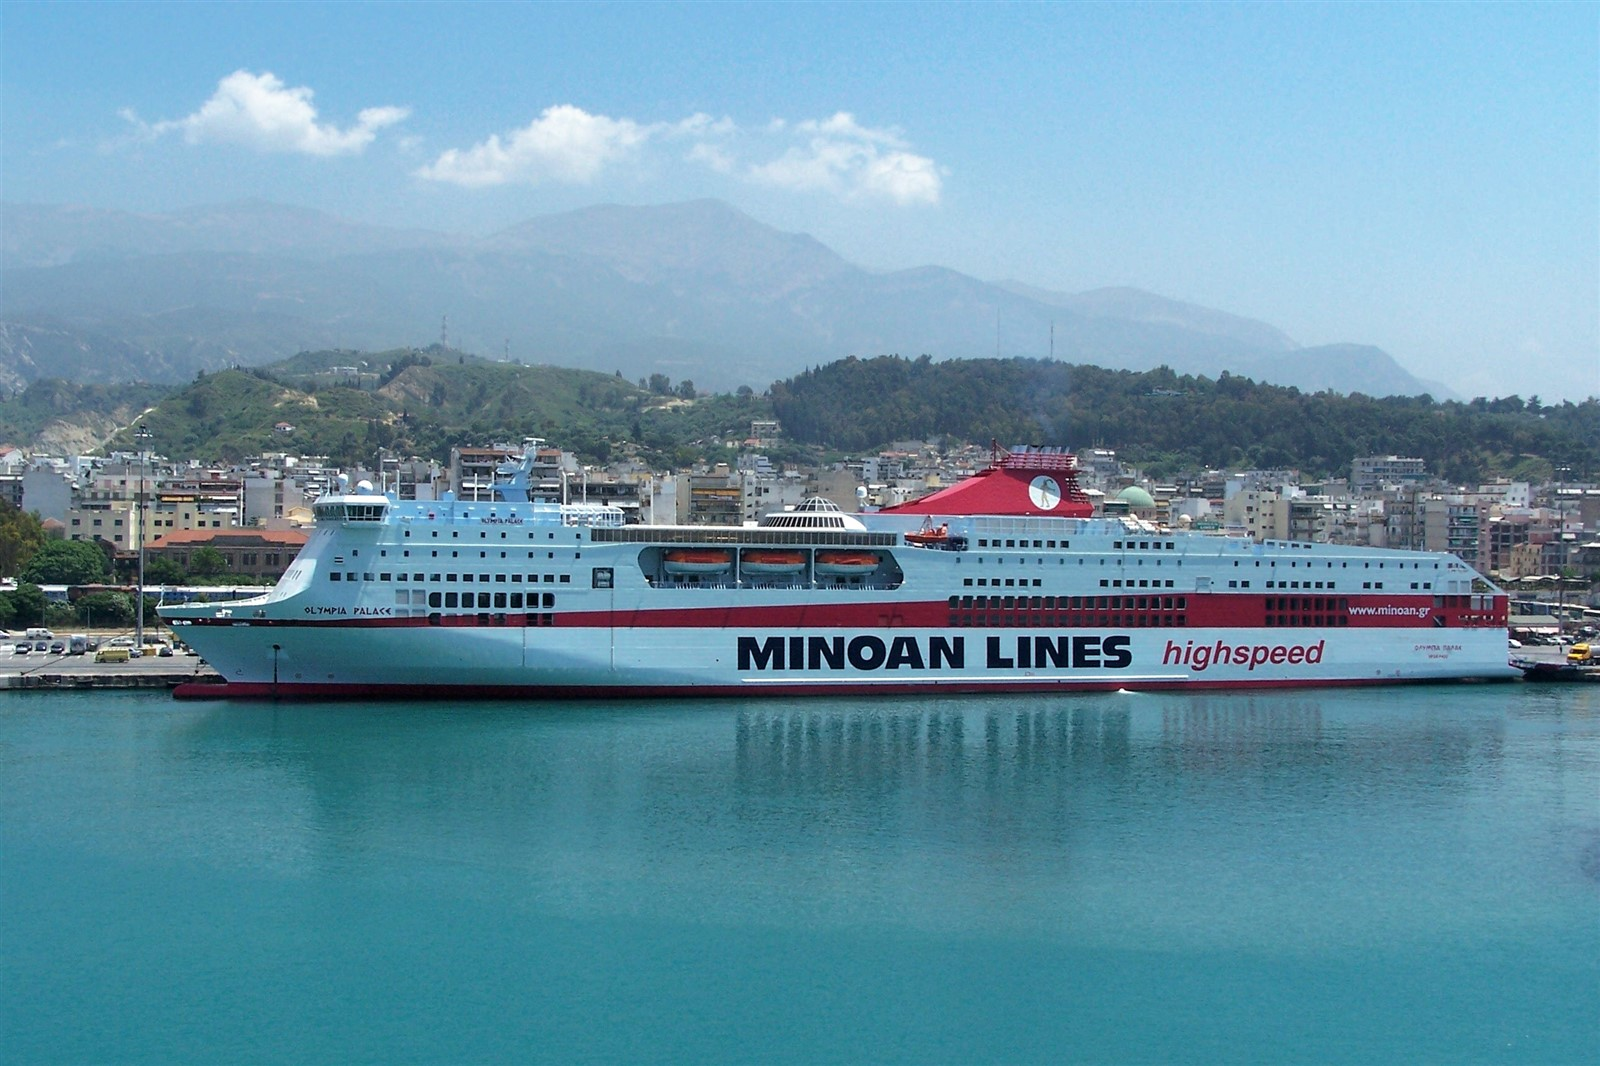 MINOAN LINES HSF Olympia Palace 20_Personale 26Mg06